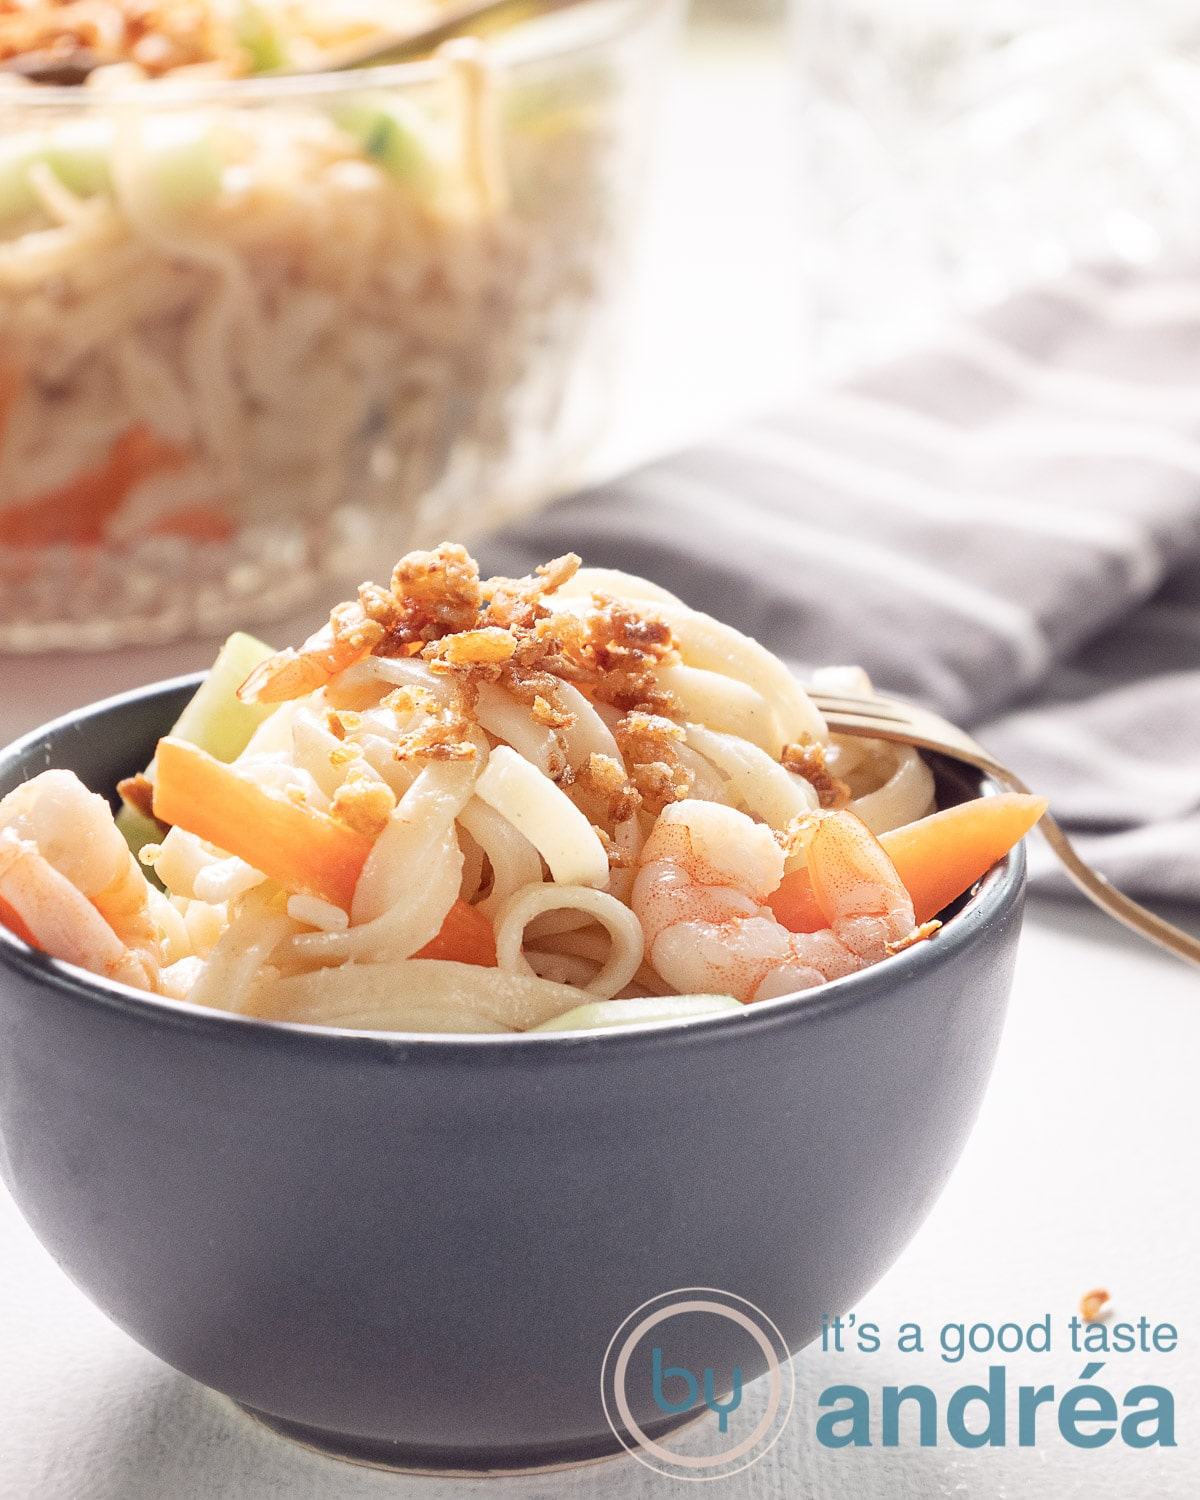 A grey bowl filled with Indonesian noodle salad with cucumber, carrot and shrimp. A glass bowl at the back. A grey towel on the right